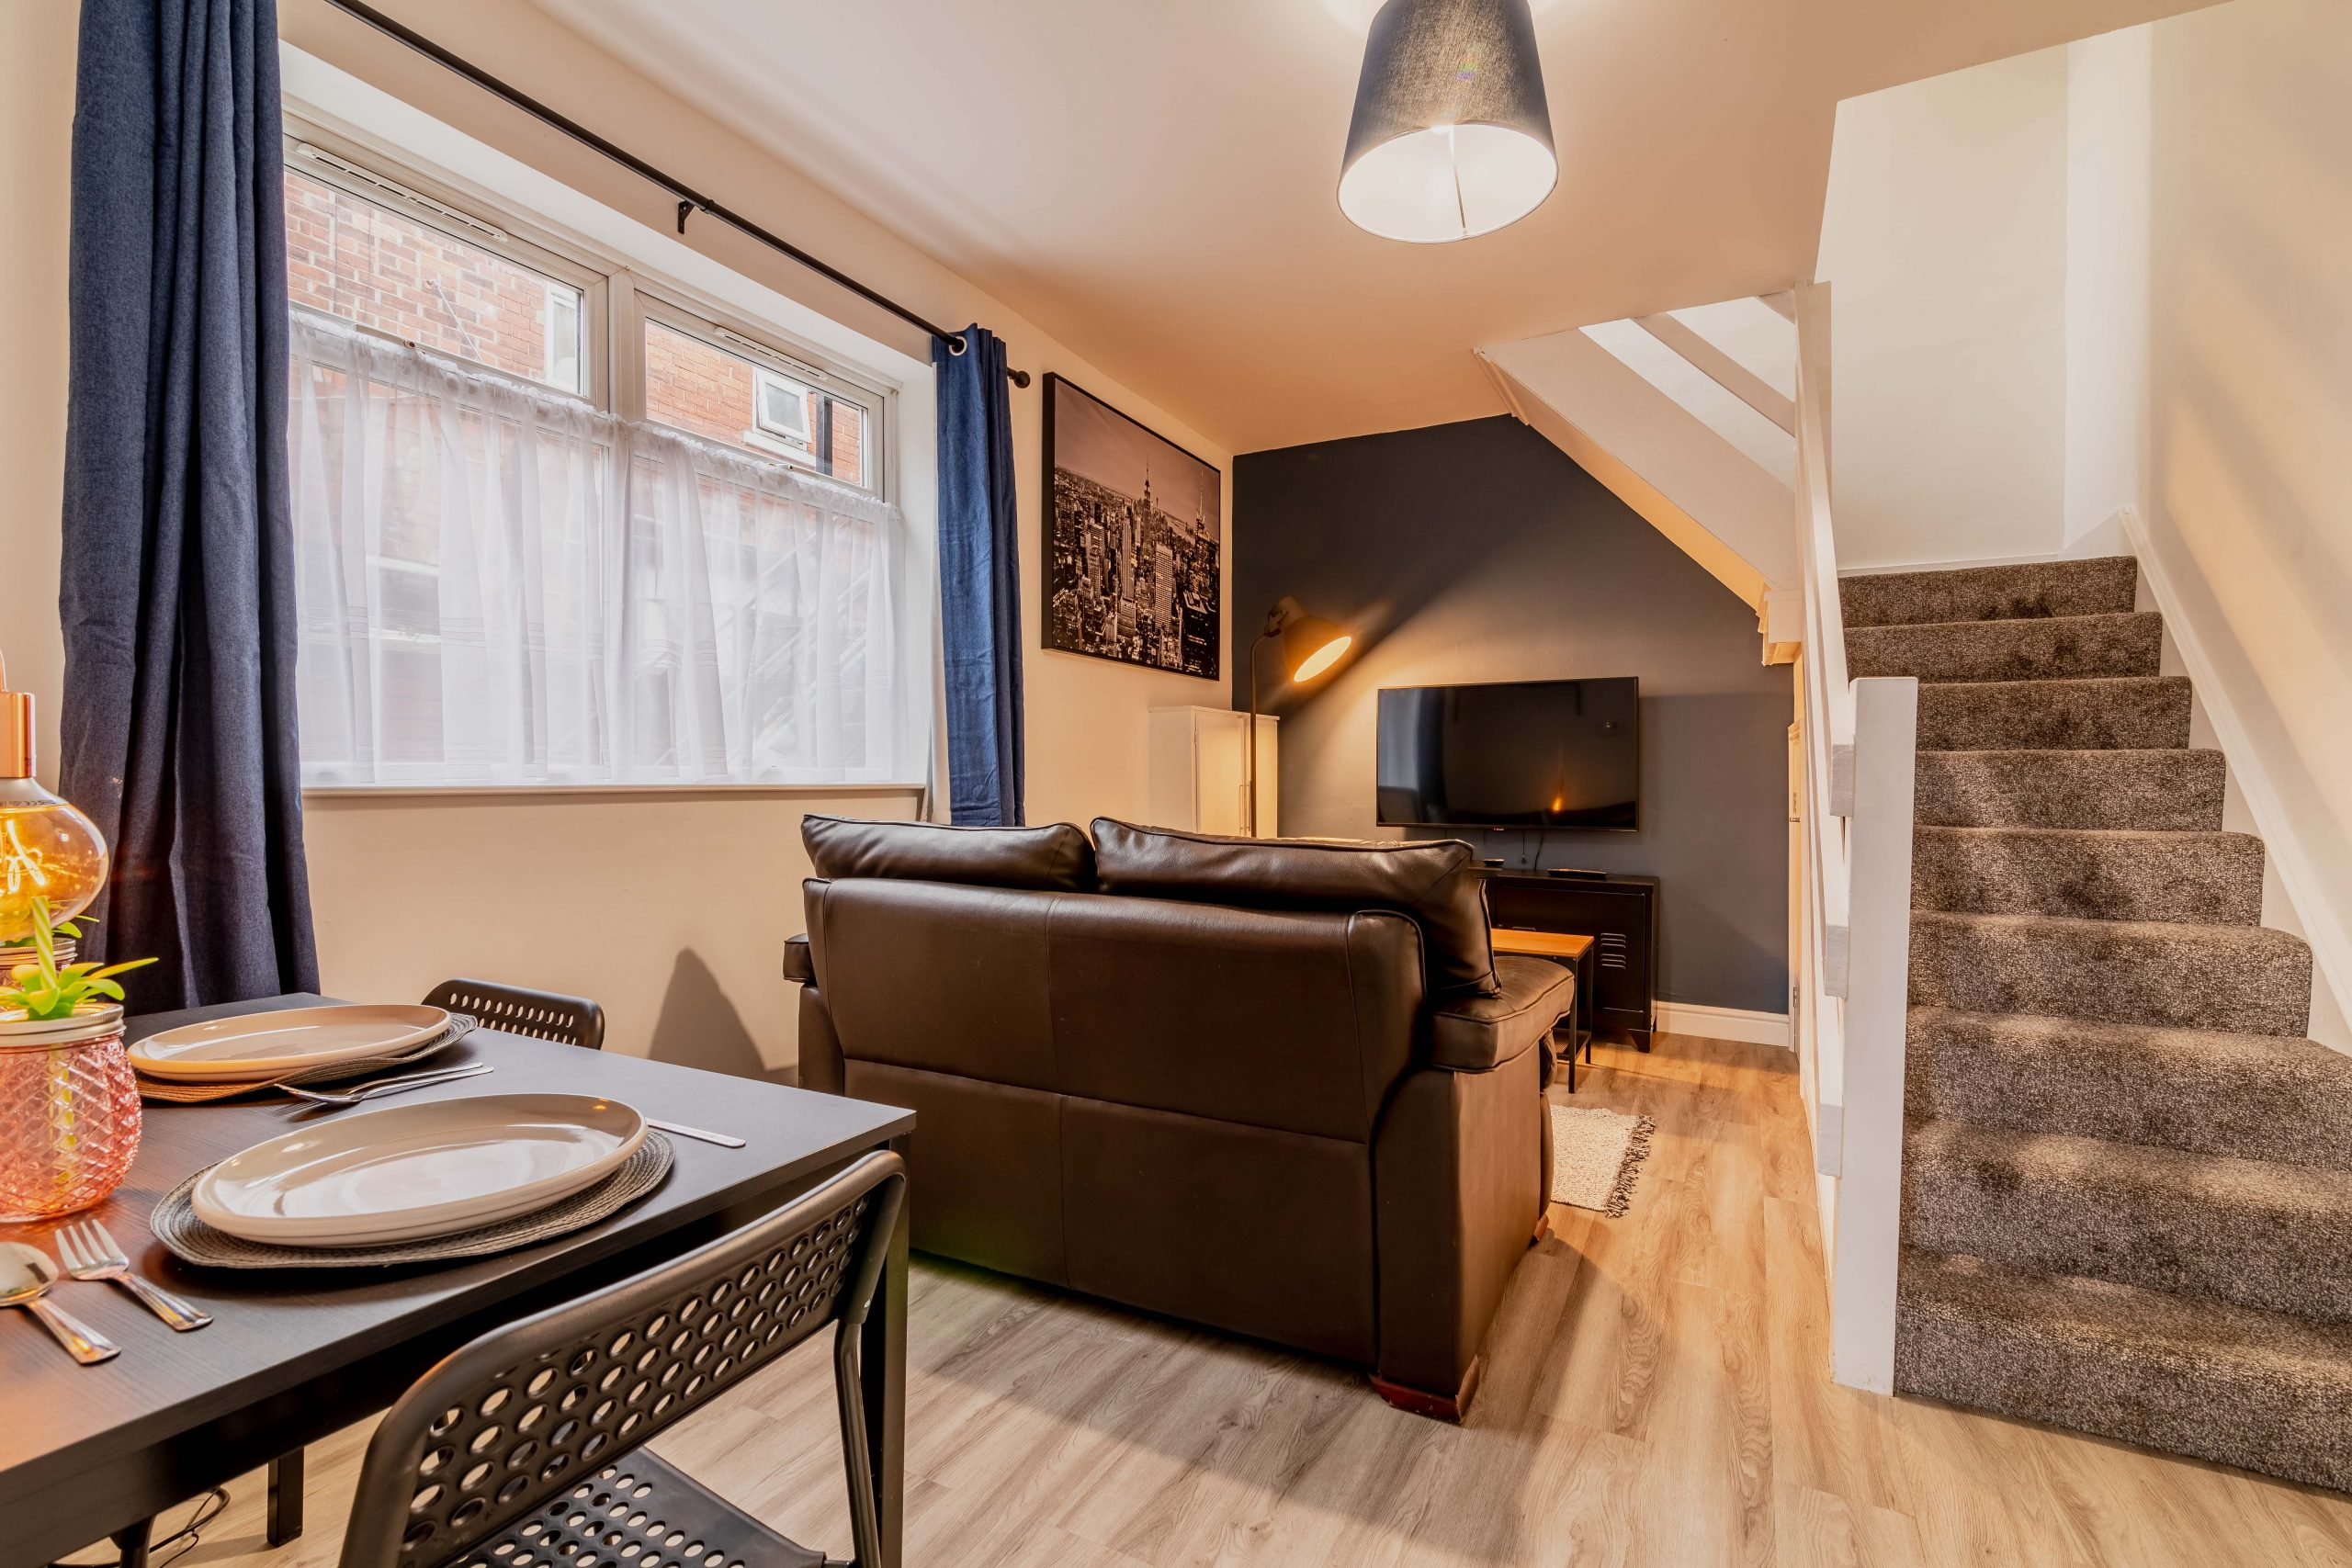 student lets hull, student living hull, student properties hull